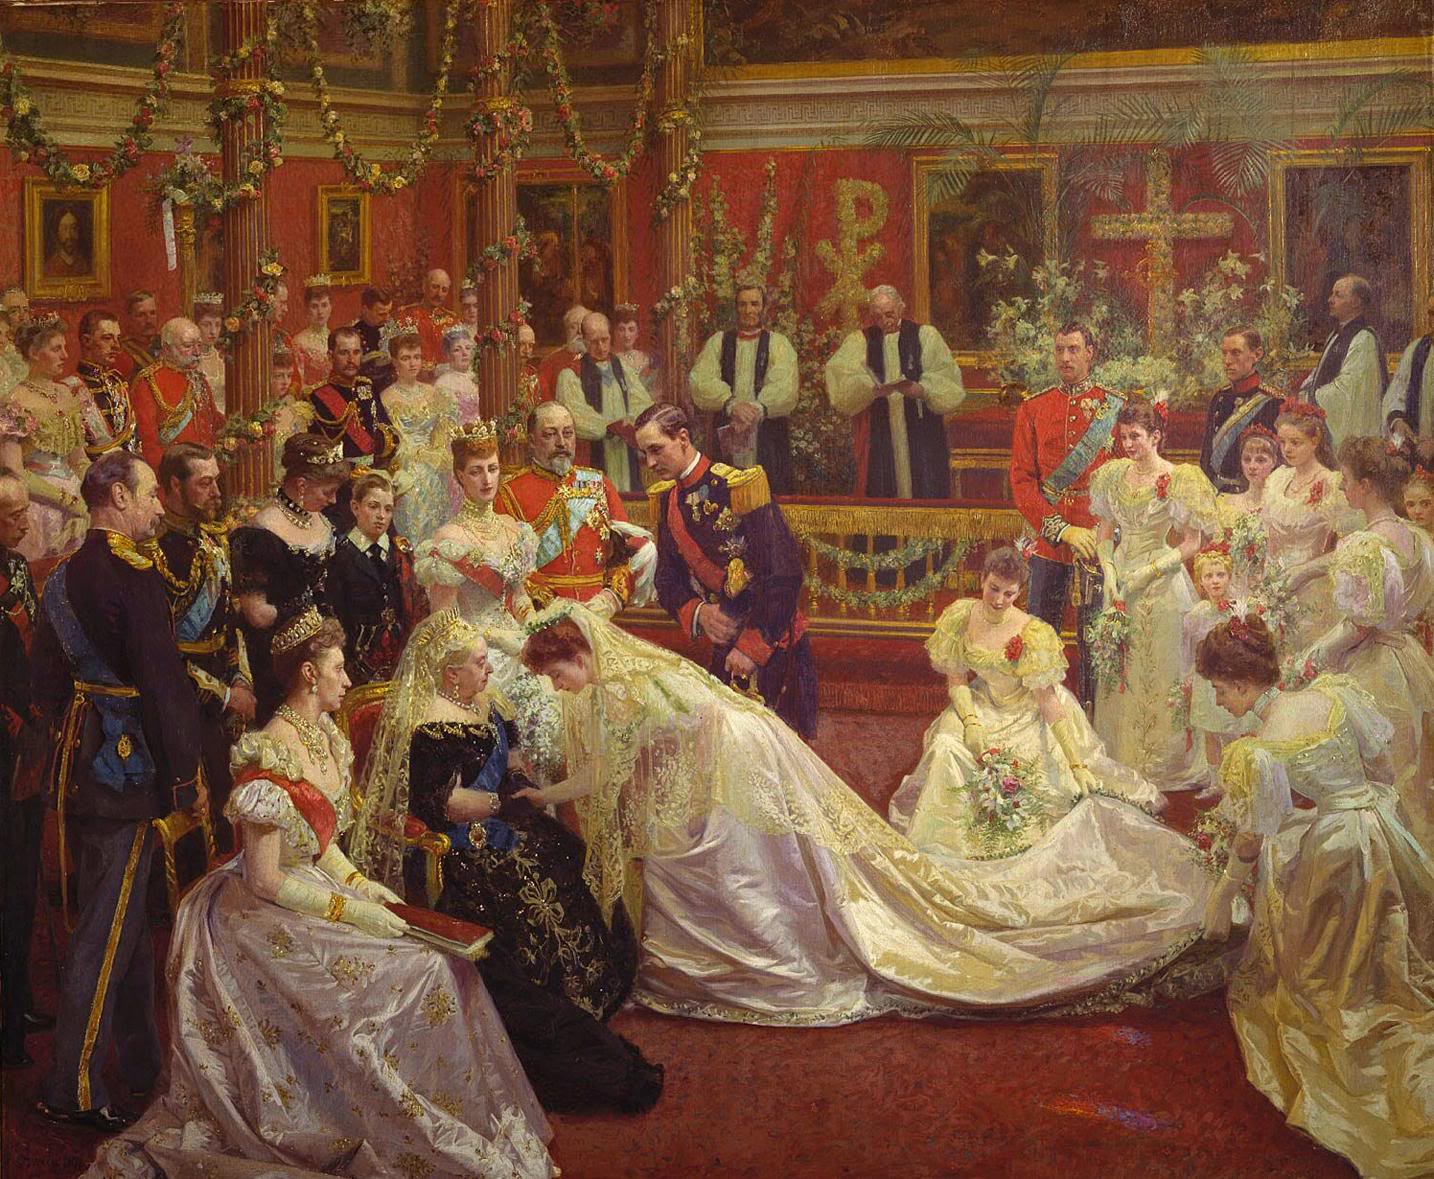 The wedding of Princess Maud of Wales and Prince Carl of Denmark in 1897. Prince Carl later became King Haakon VII of Norway. | Painter: Laurits Tuxen | Royal Collection - Public domain.